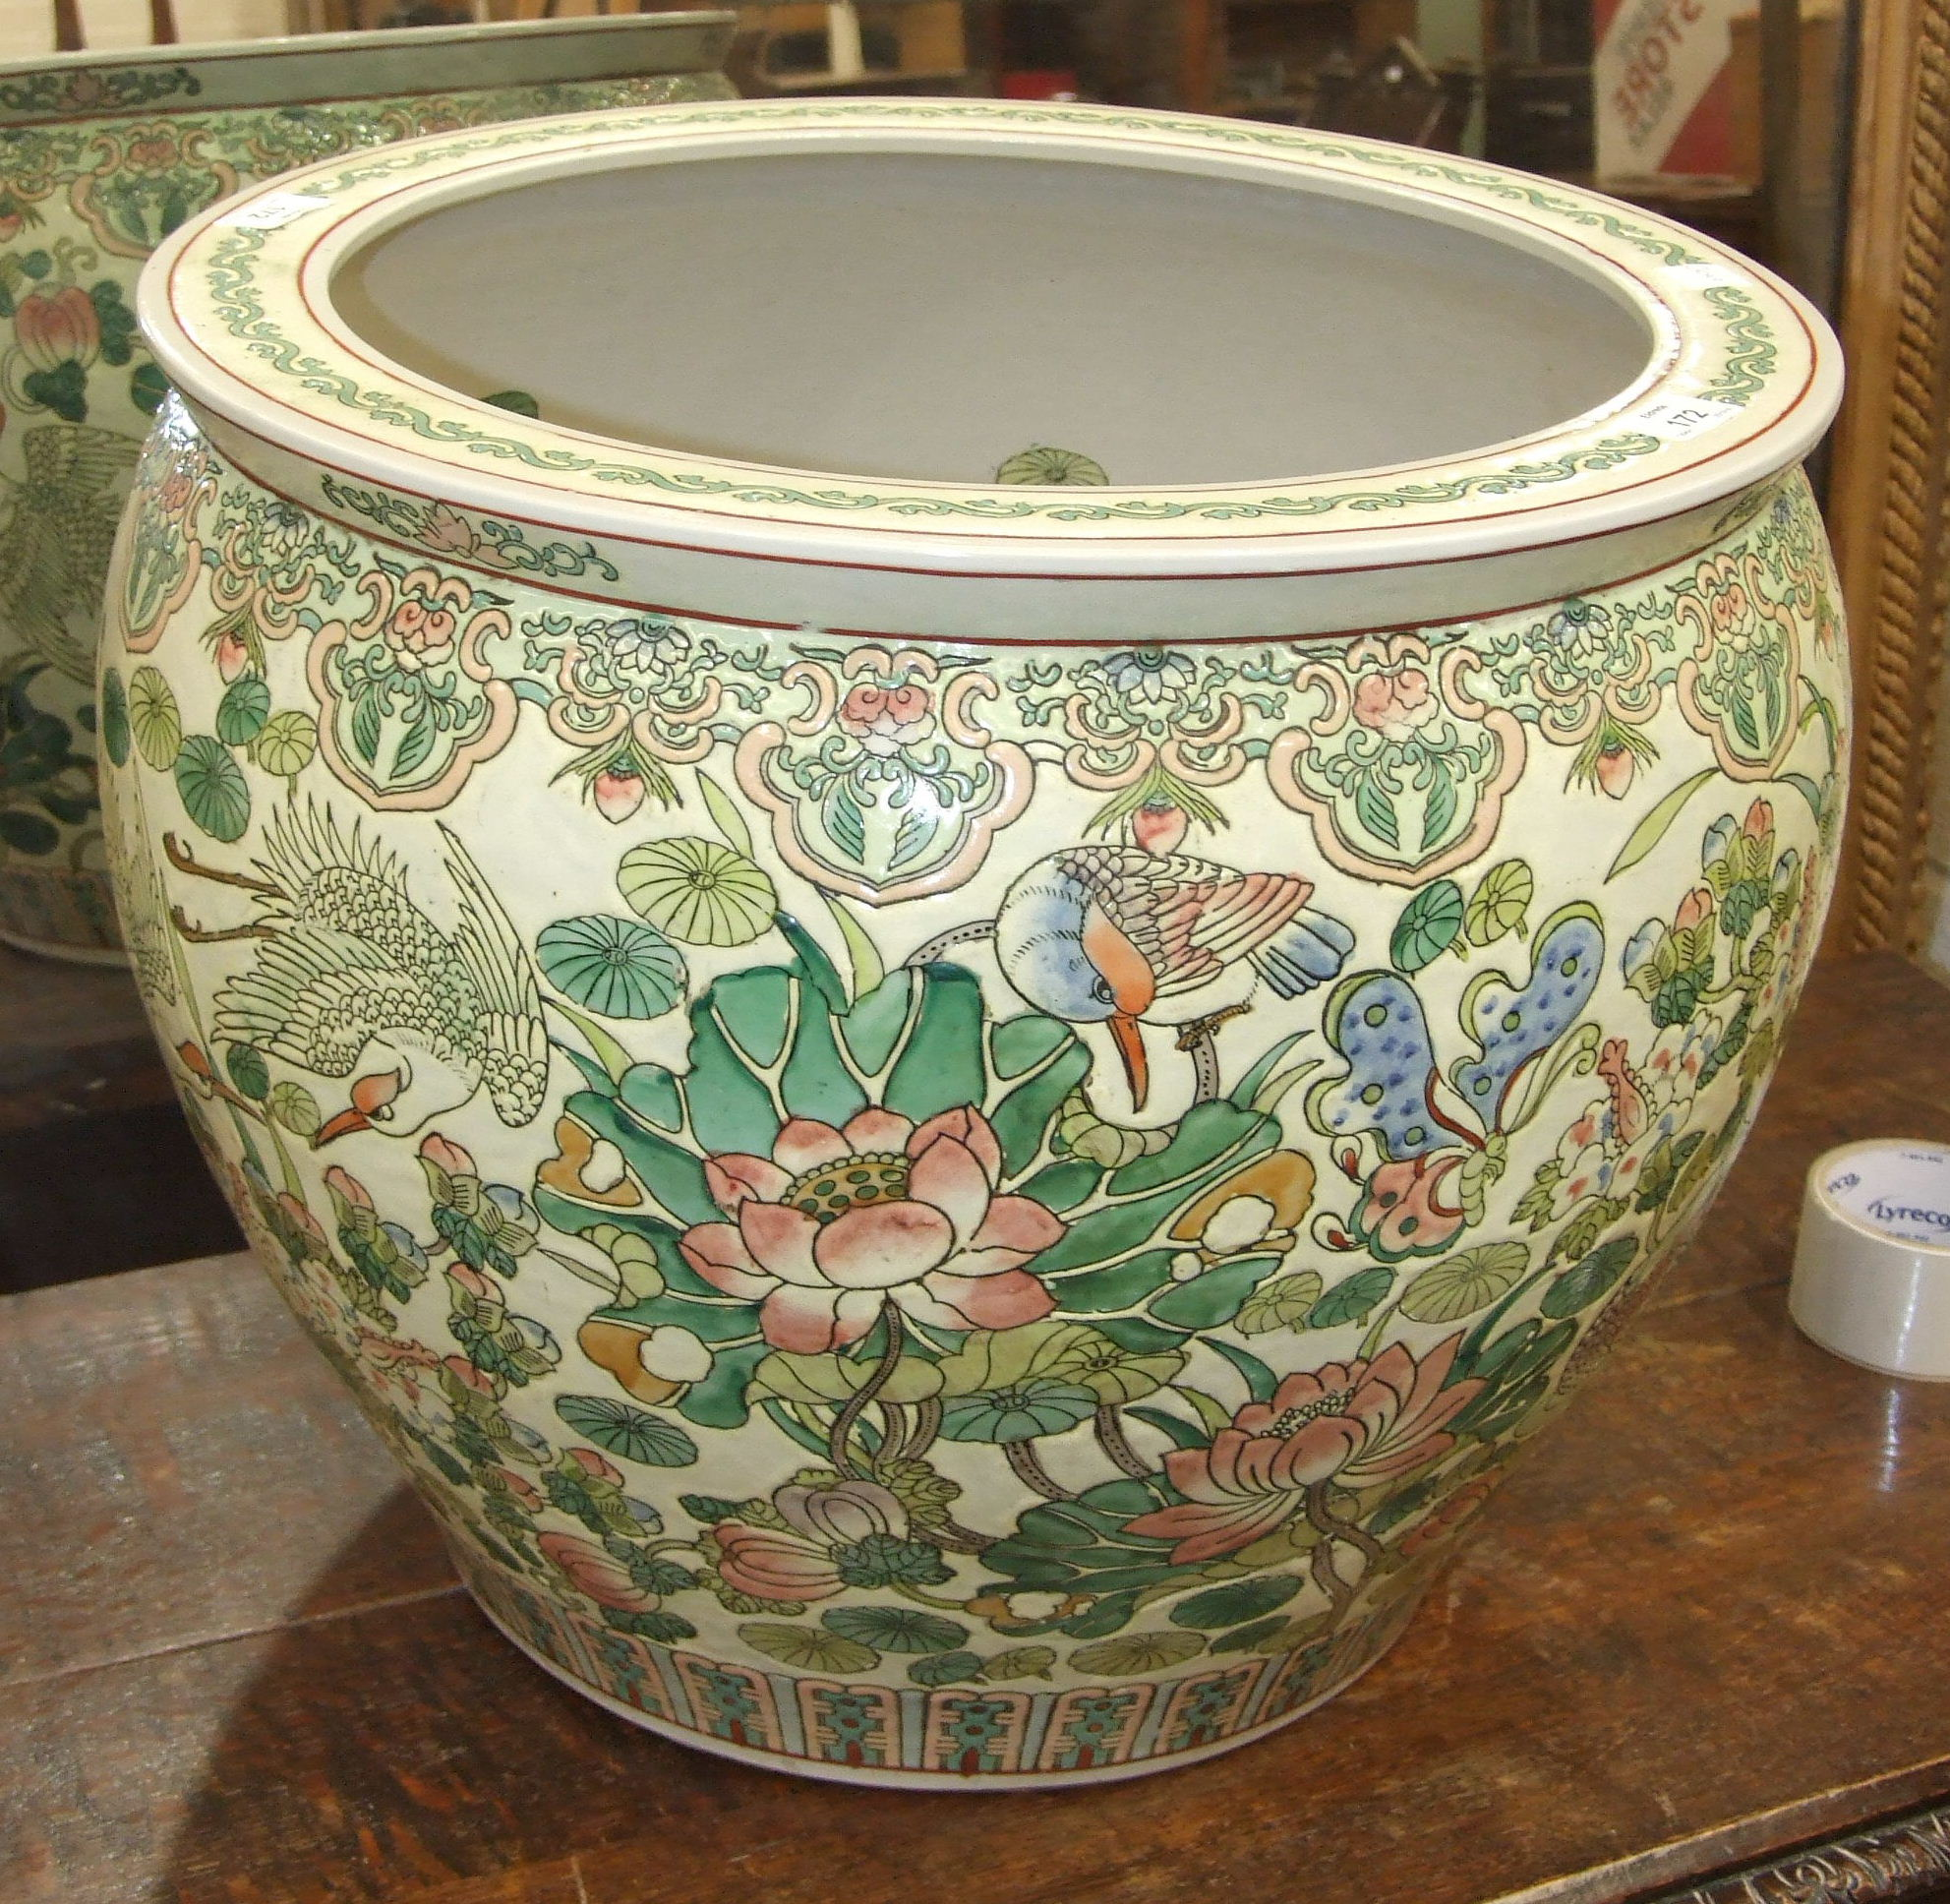 Lot 172 - A large reproduction Chinese fish tank, the outside decorated with flowers and birds in pale